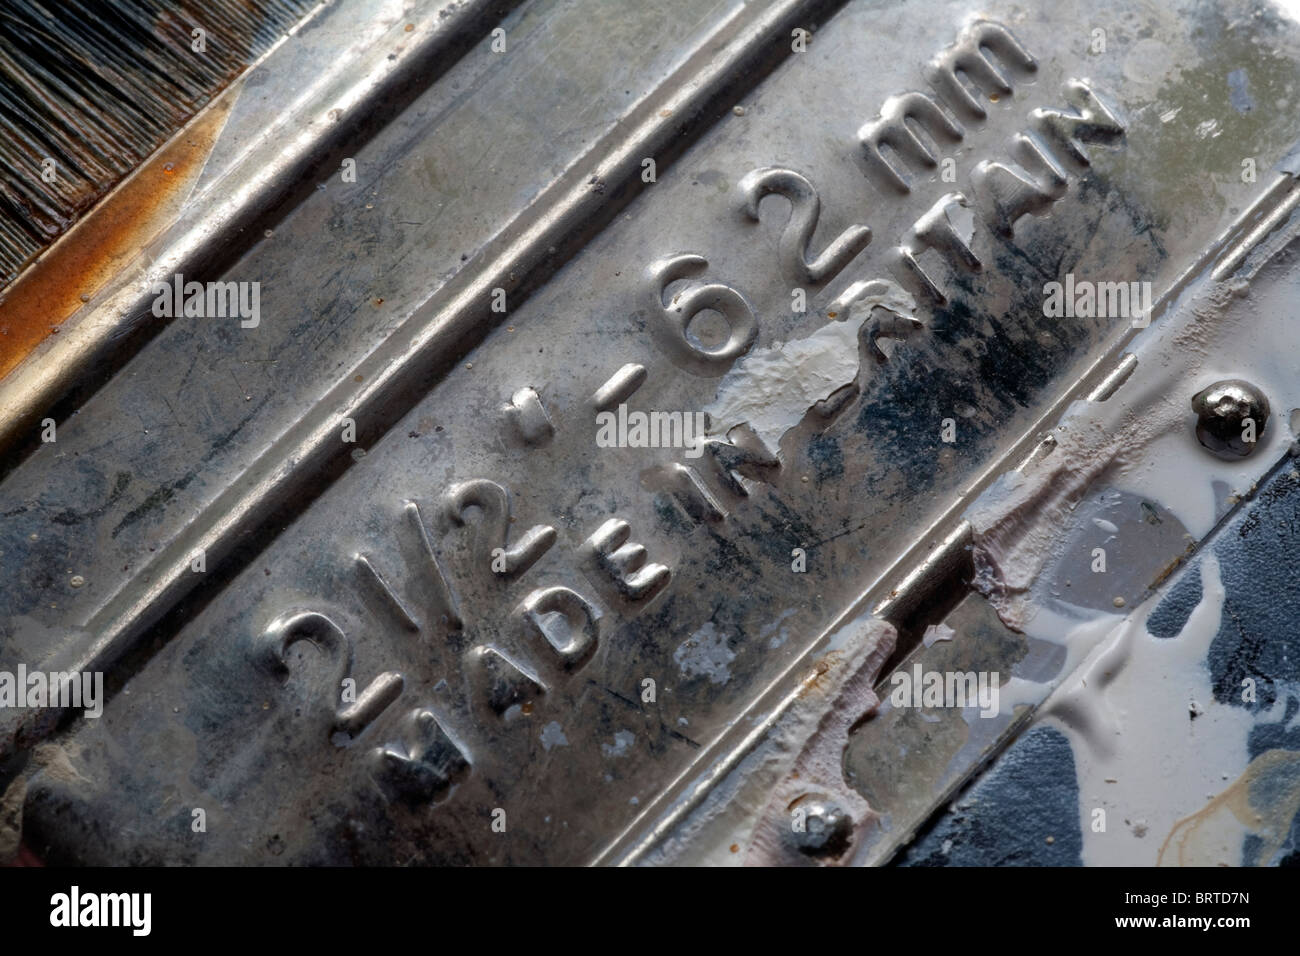 Detailed image of the reverse side of a used Harris 2.5 inch (62 mm) paint brush - Stock Image